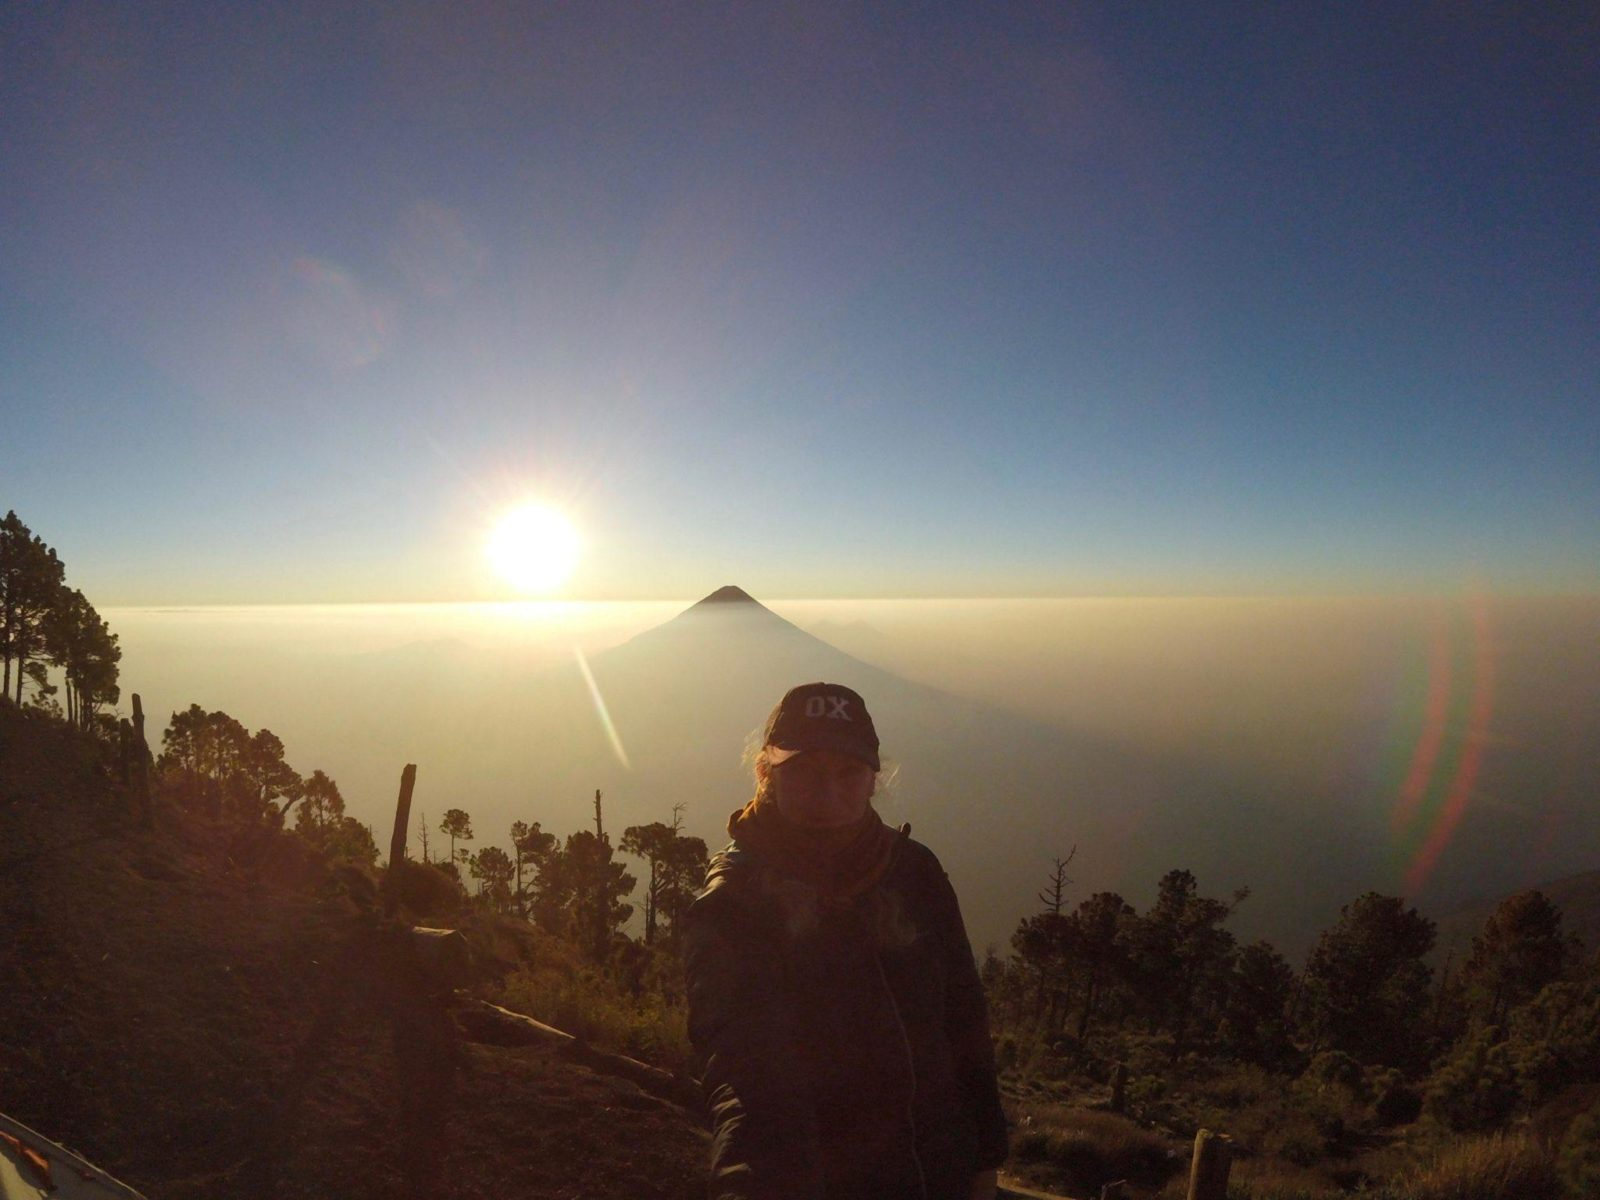 Hike Acatenango Guatemala | The Complete Guide to the Acatenango Volcano Hike